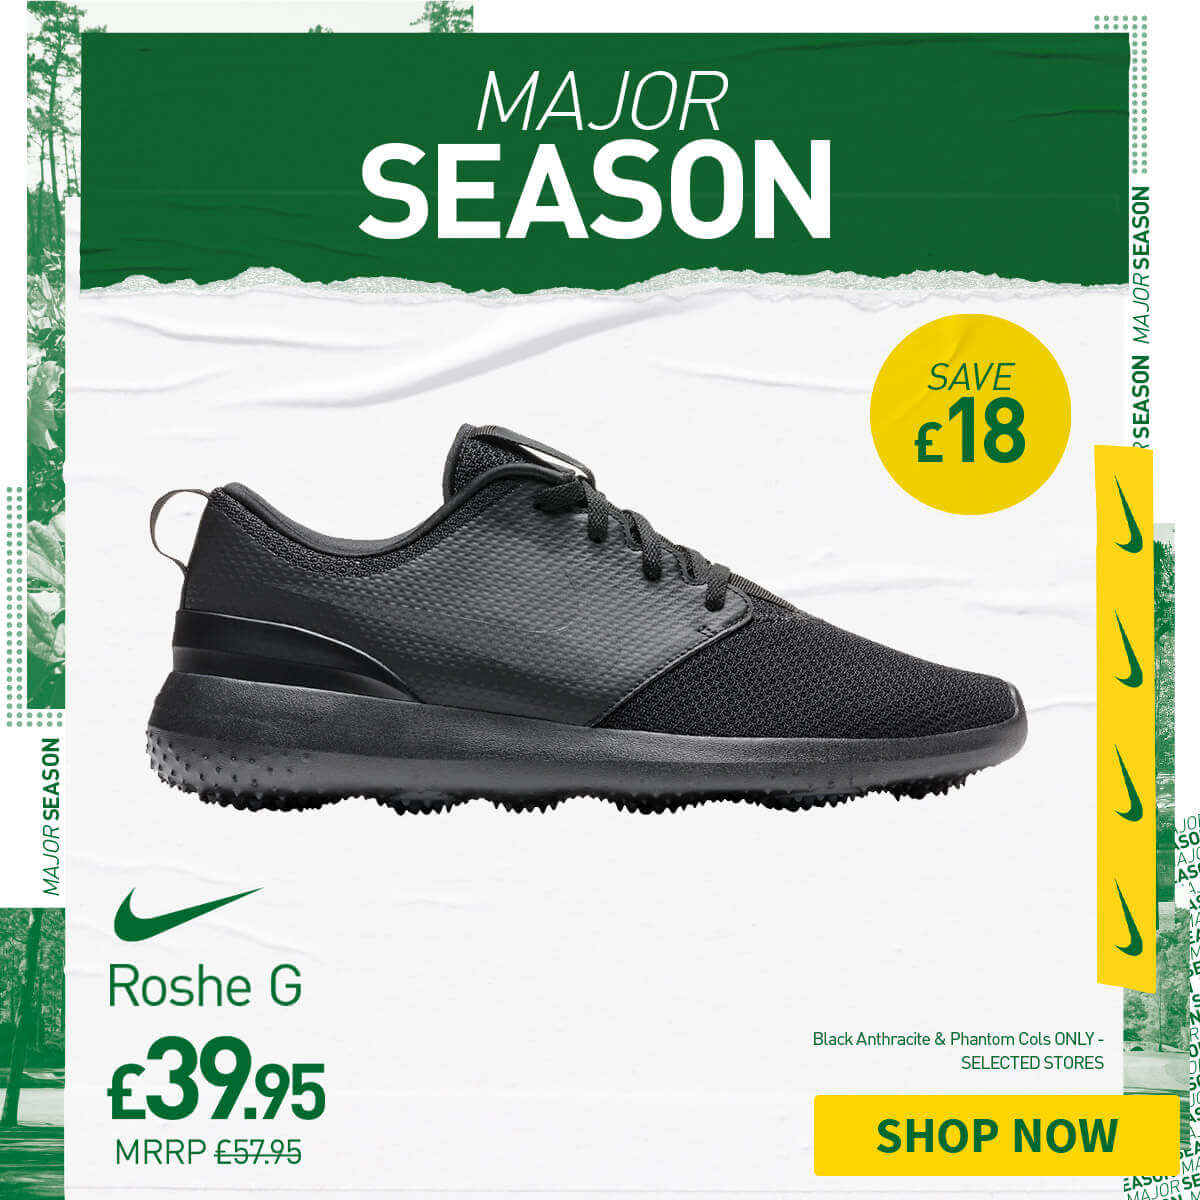 NIKE ROSHE G GOLF SHOES - SAVE £18